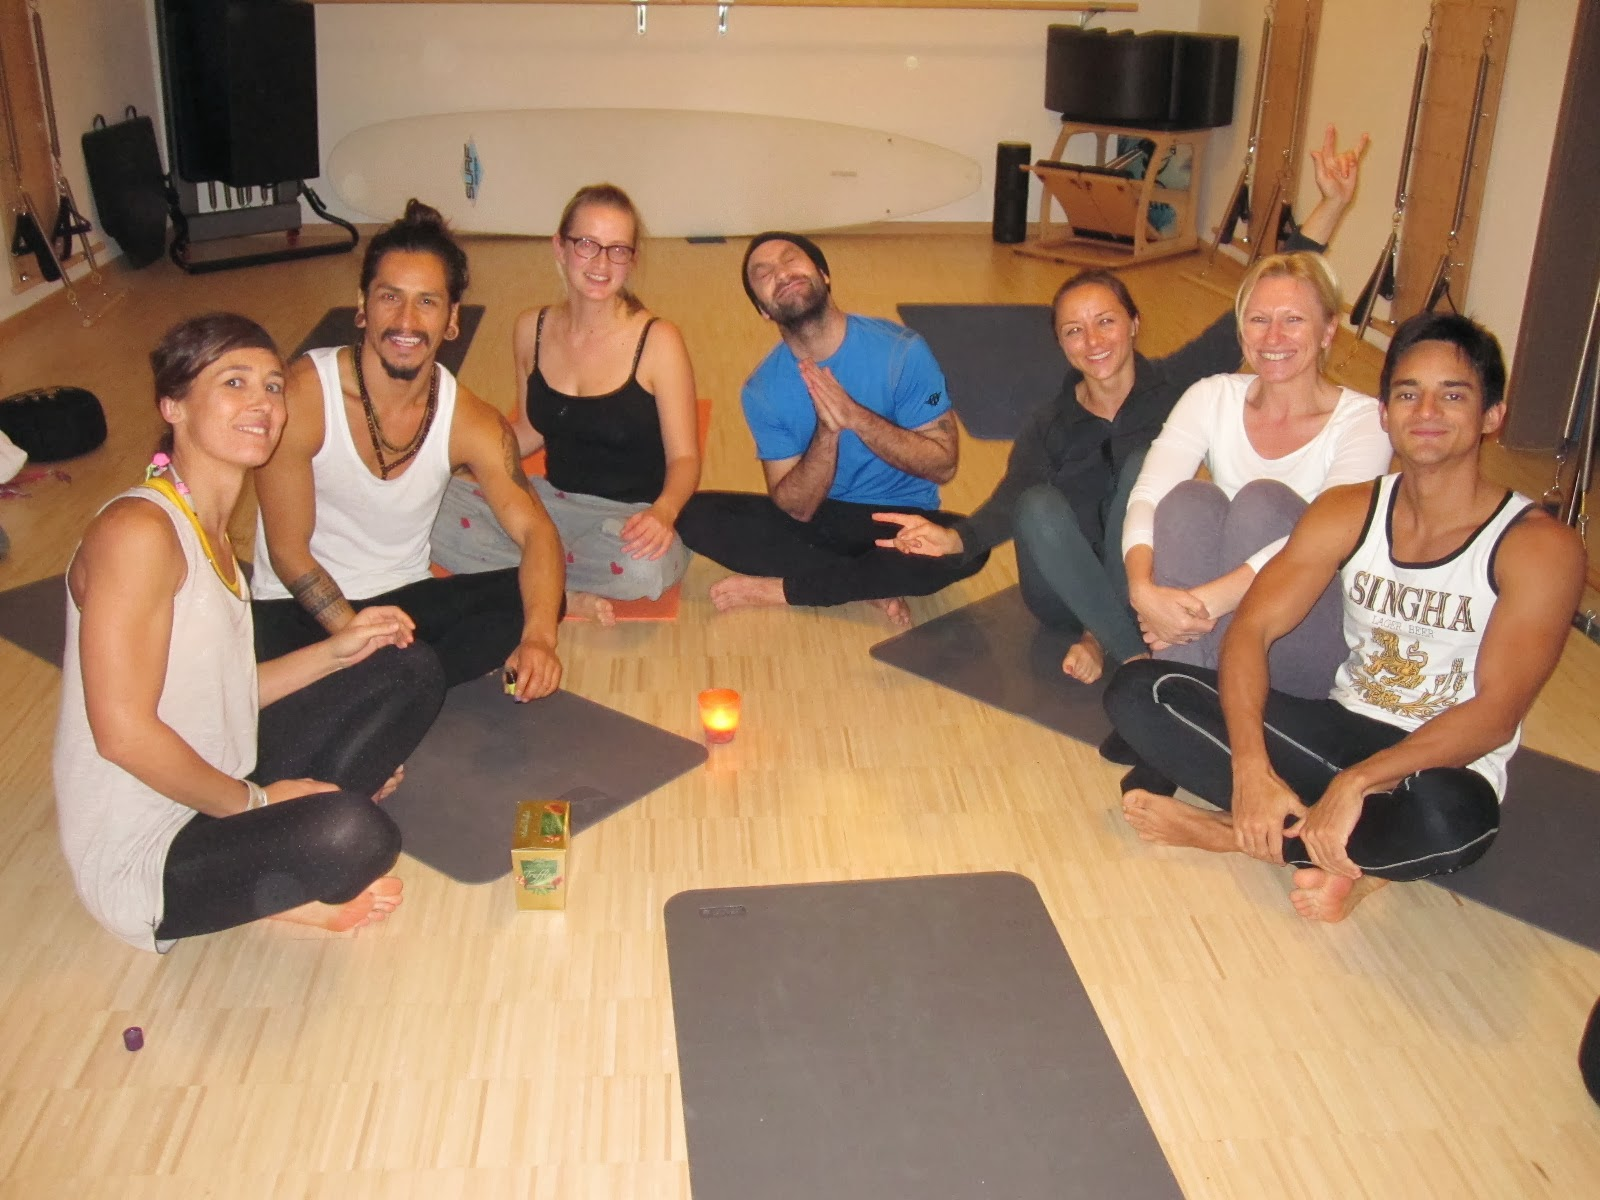 TT 2013/2014 Yoga Lounge IN beim HAPPY Yoga & Pilates Ingolsatdt- Starting the Path, Nov 2013